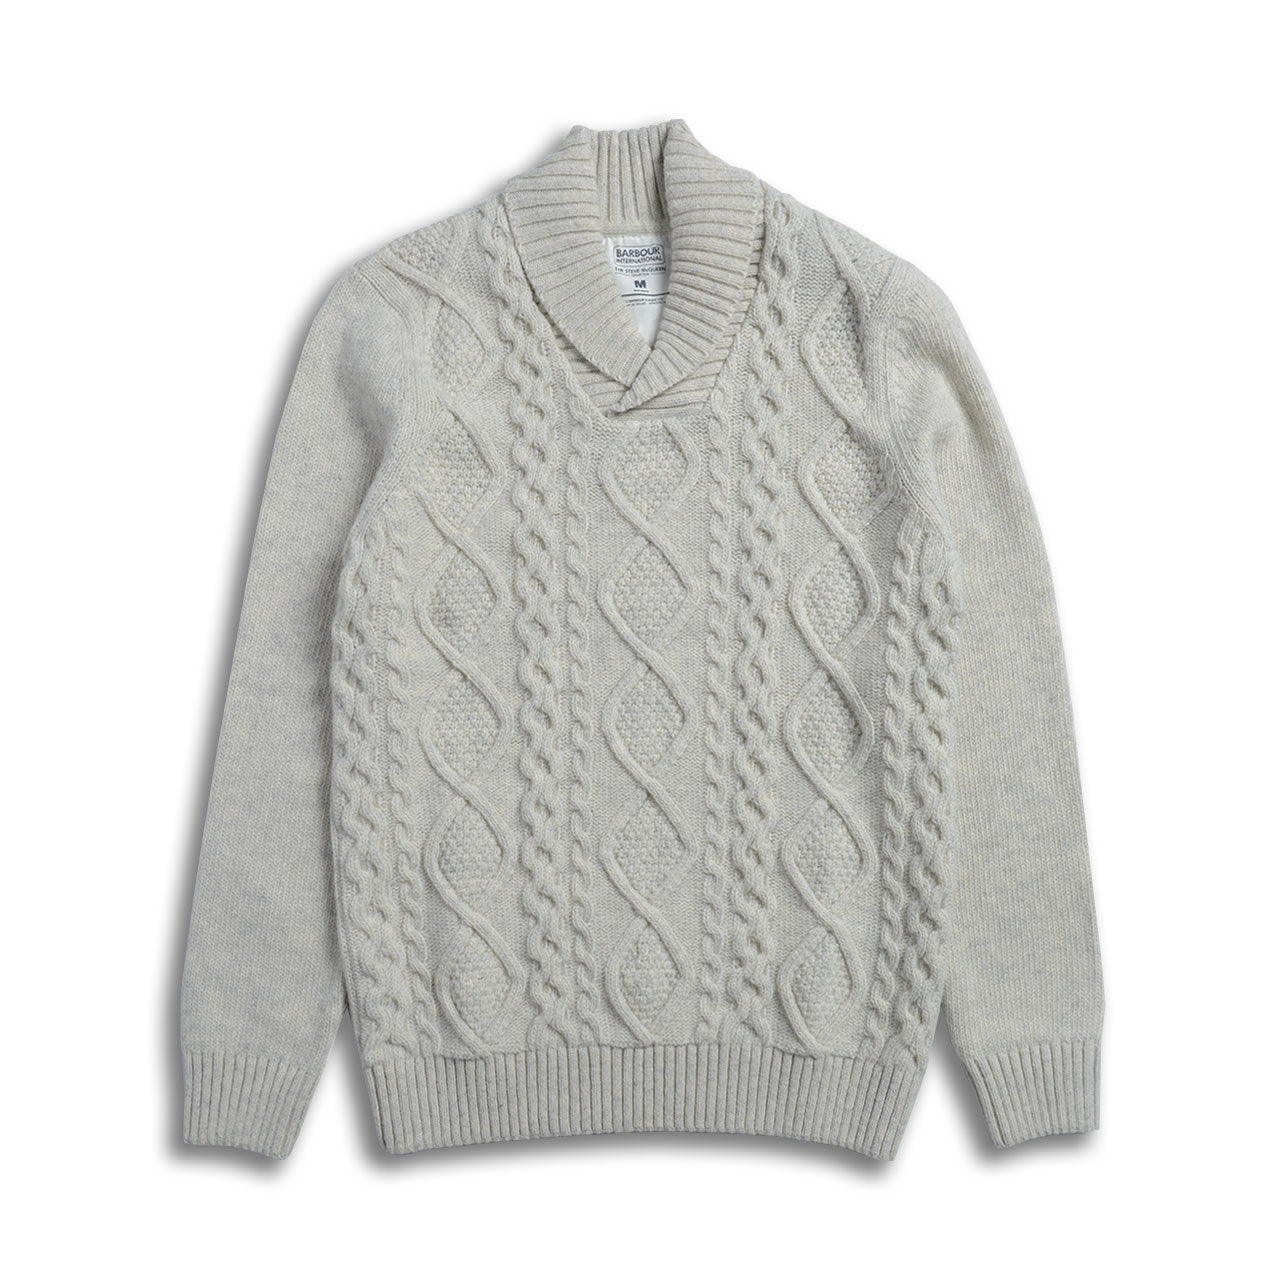 Barbour International Steve McQueen Cable Sweater